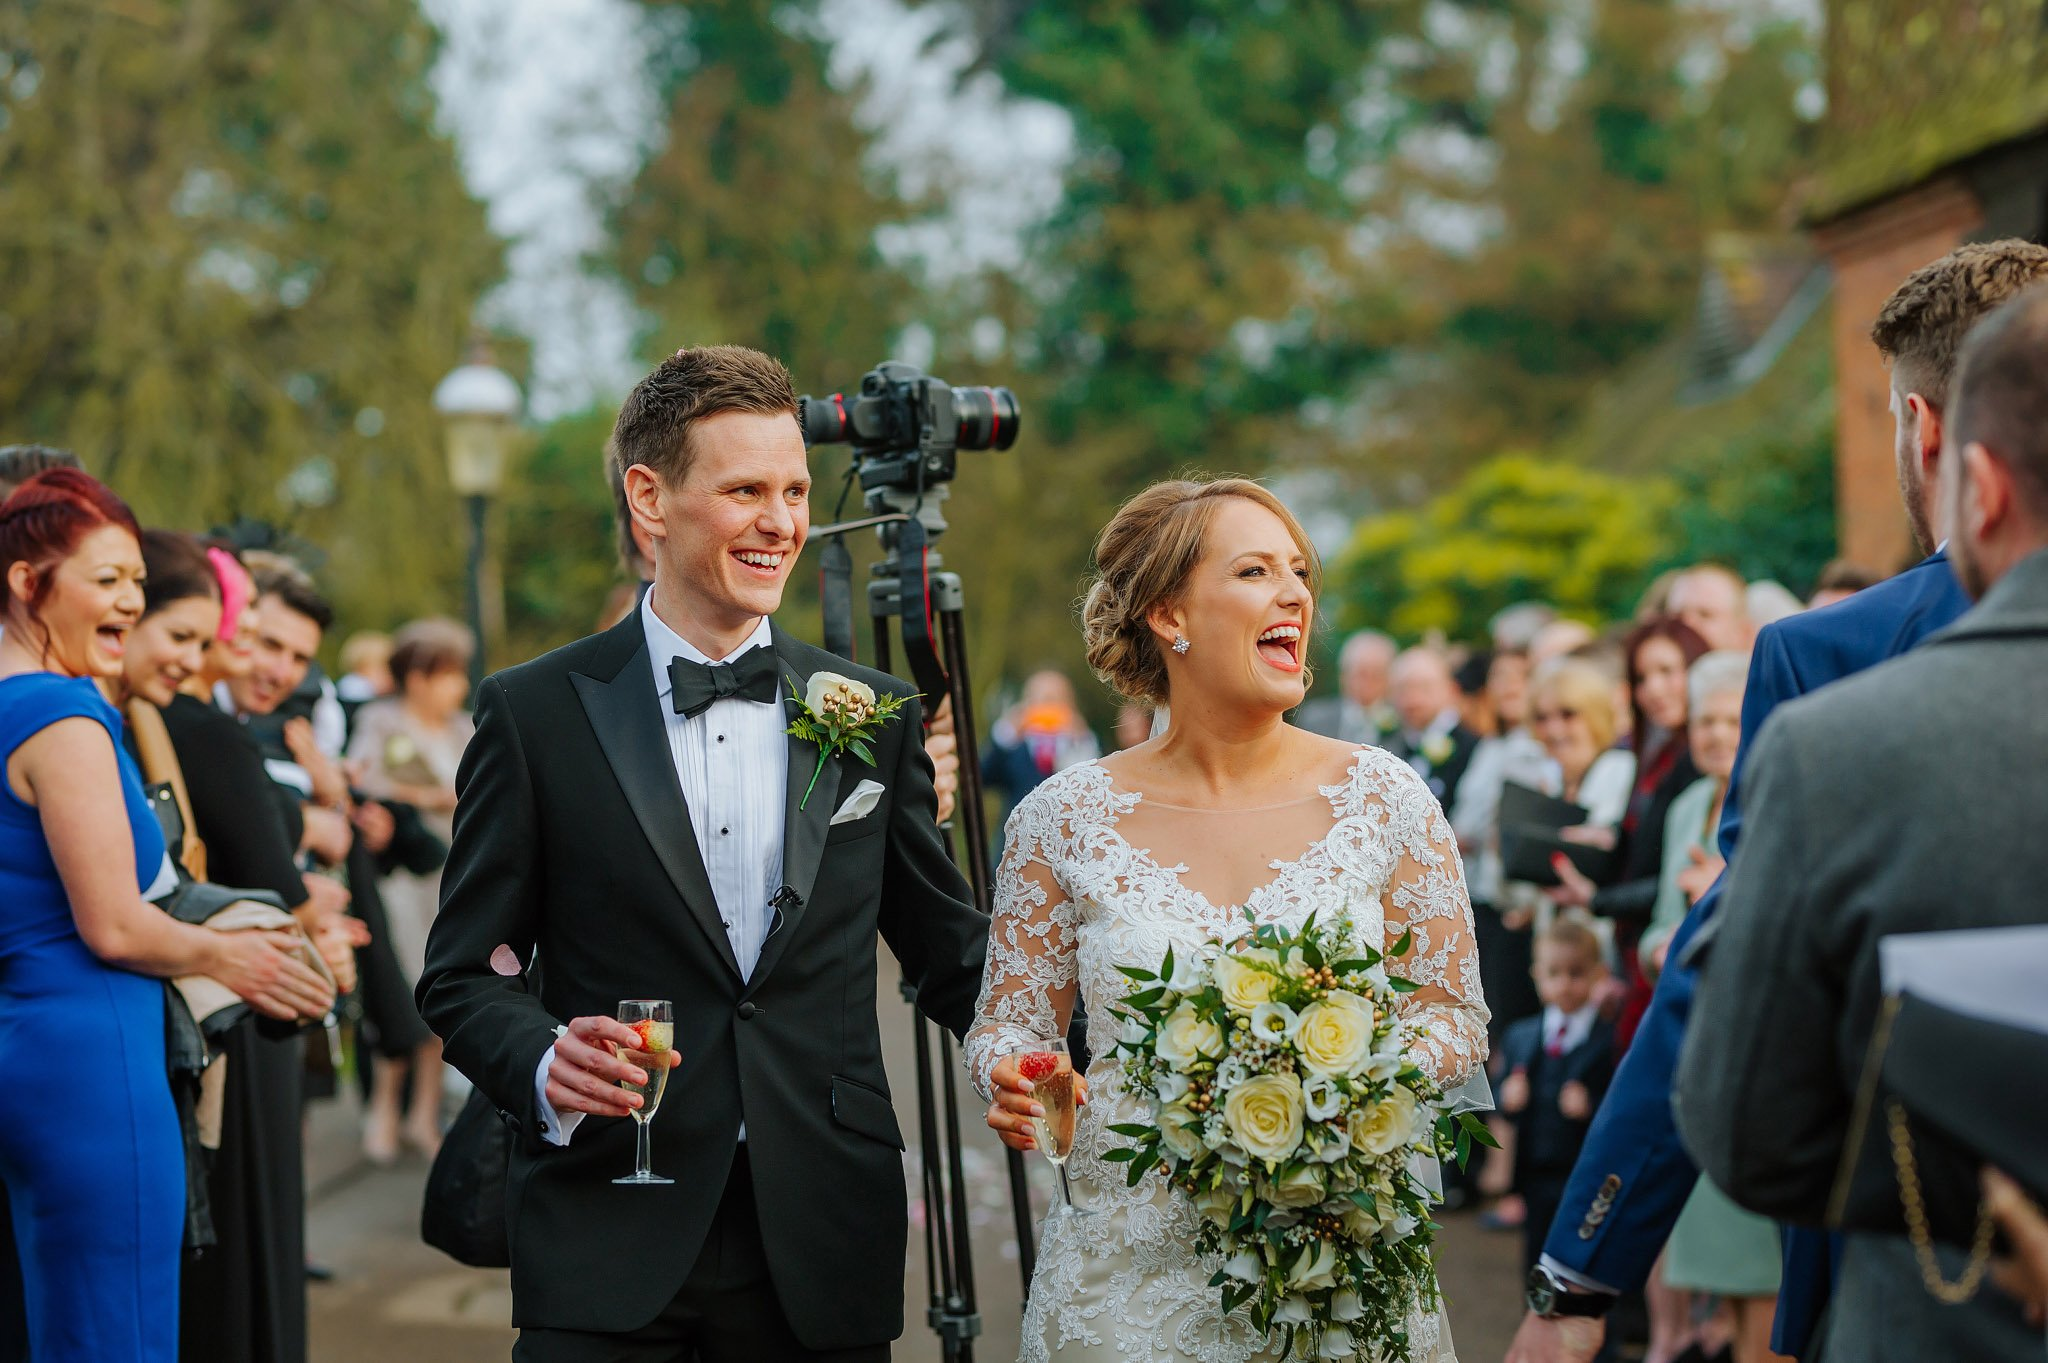 Coombe Abbey wedding in Coventry, Warwickshire - Sam + Matt 24